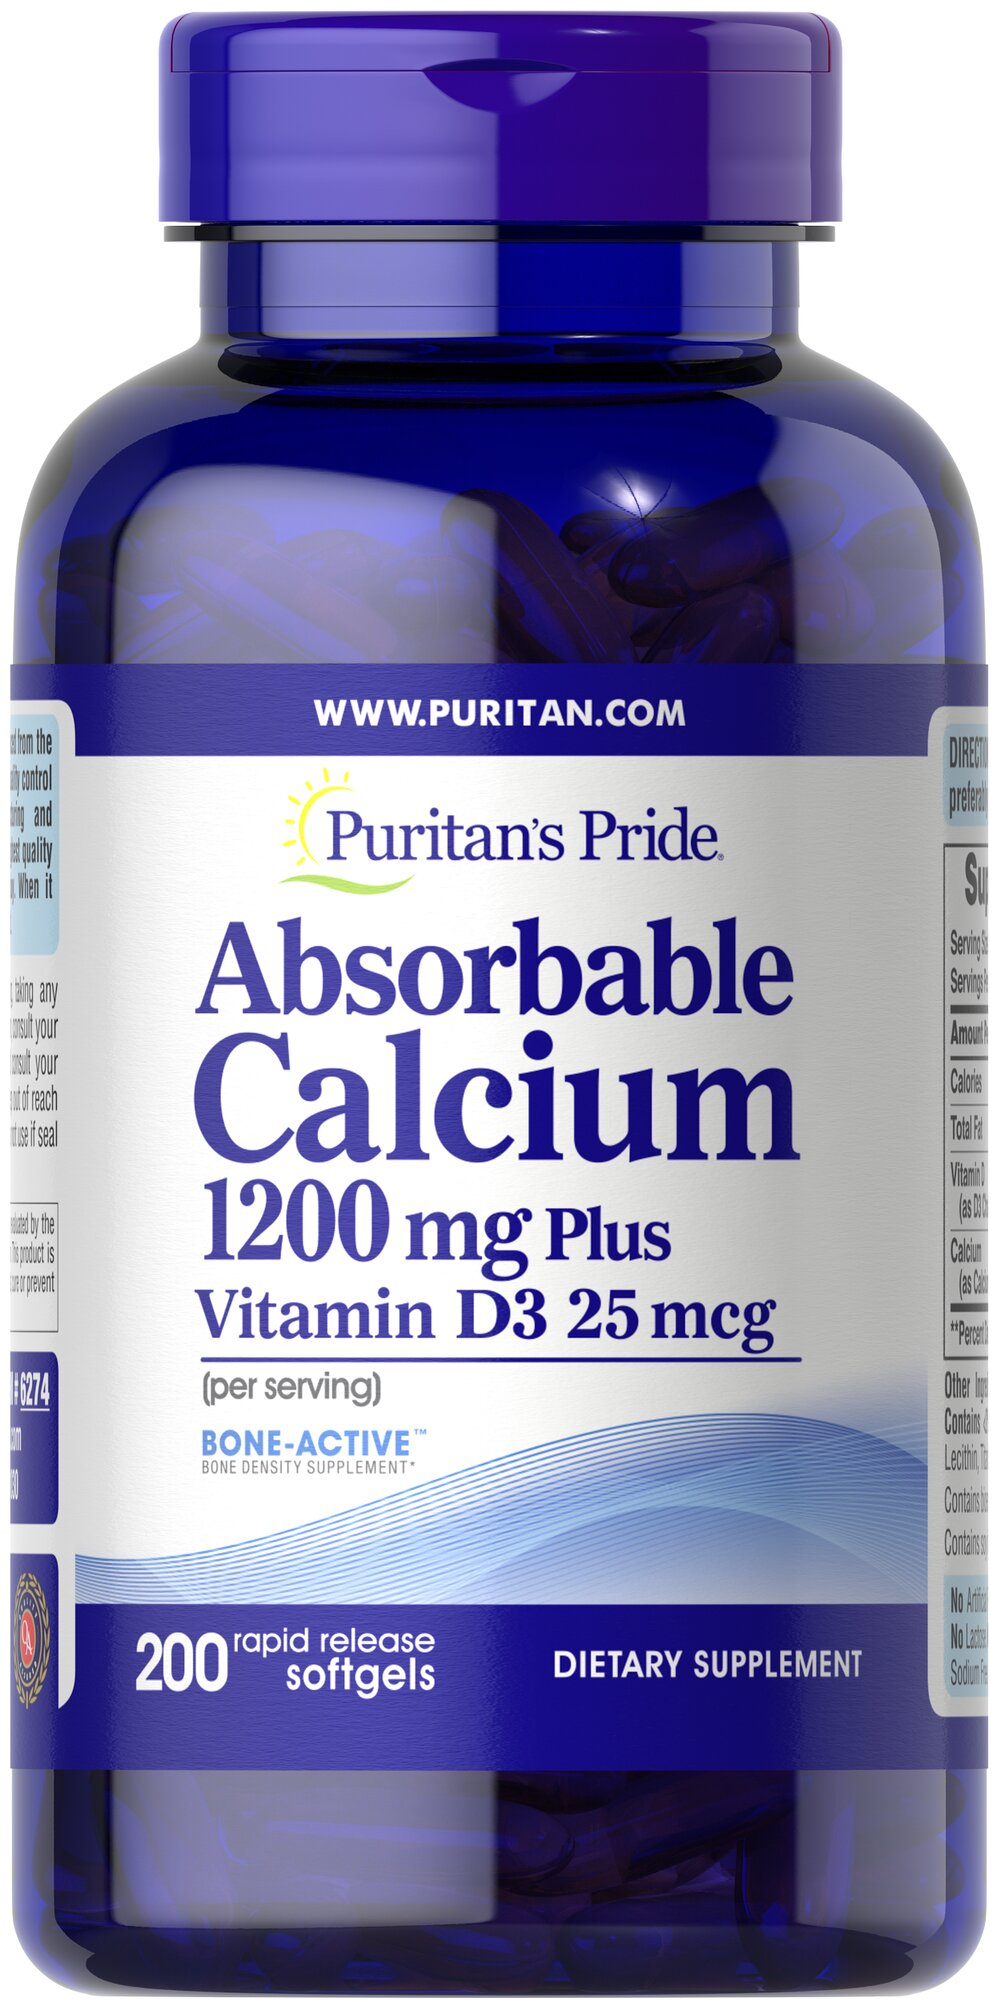 Absorbable Calcium 1200 mg with Vitamin D 1000 IU <p>Finally, a liquid Calcium supplement in a convenient softgel form! Less than 30 minutes after ingestion, each rapid dissolving softgel releases pre-dissolved liquid Calcium. Plus, each softgel is fortified with Vitamin D. Calcium and Vitamin D help maintain healthy bones in adults.**</p> 200 Softgels 1200 mg/1000 IU $19.99